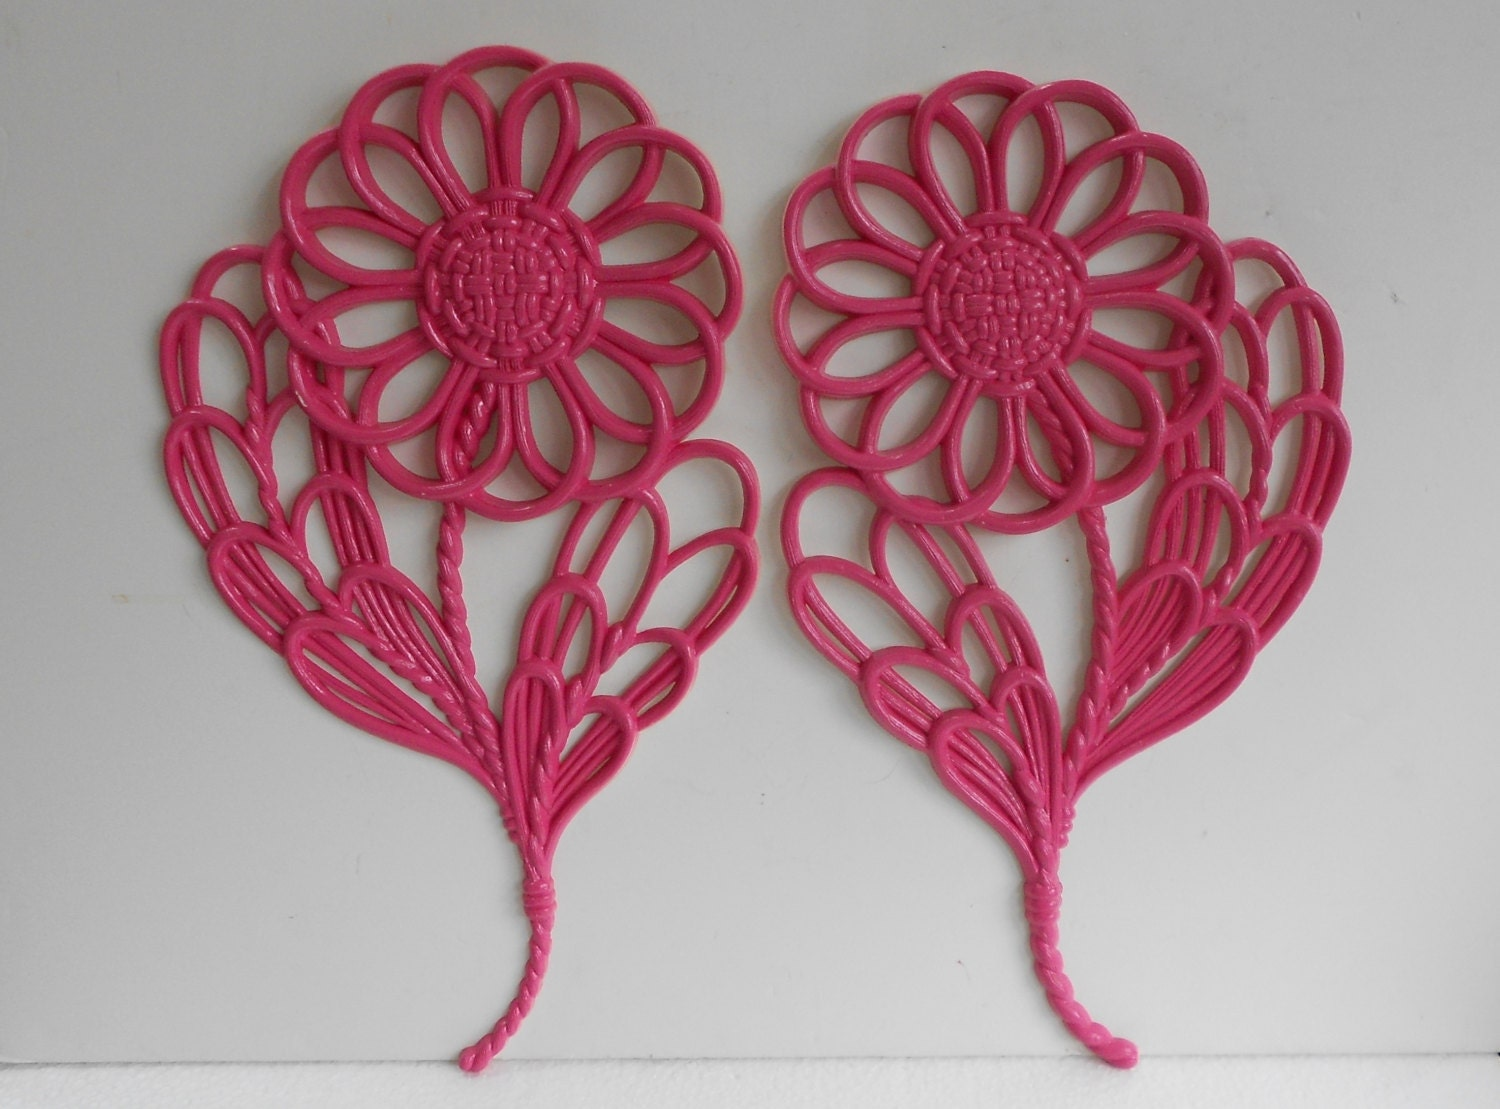 Large Flower Wall Decor : Wall flowers large vintage hangings decor hot